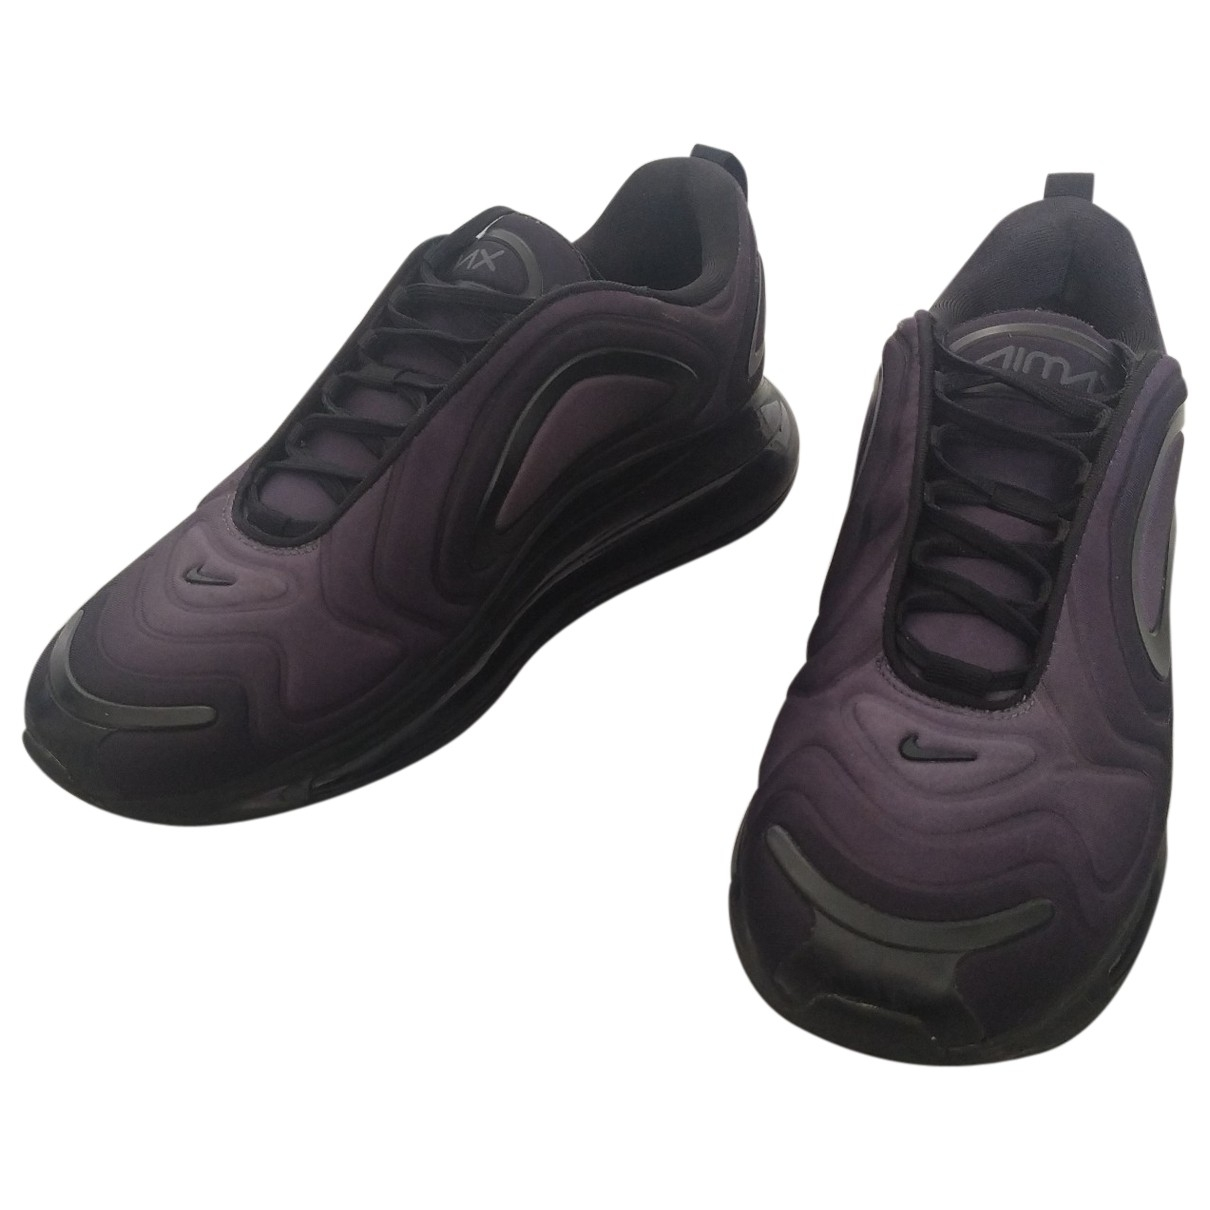 Nike Air Max 270  Anthracite Cloth Trainers for Men 44.5 EU